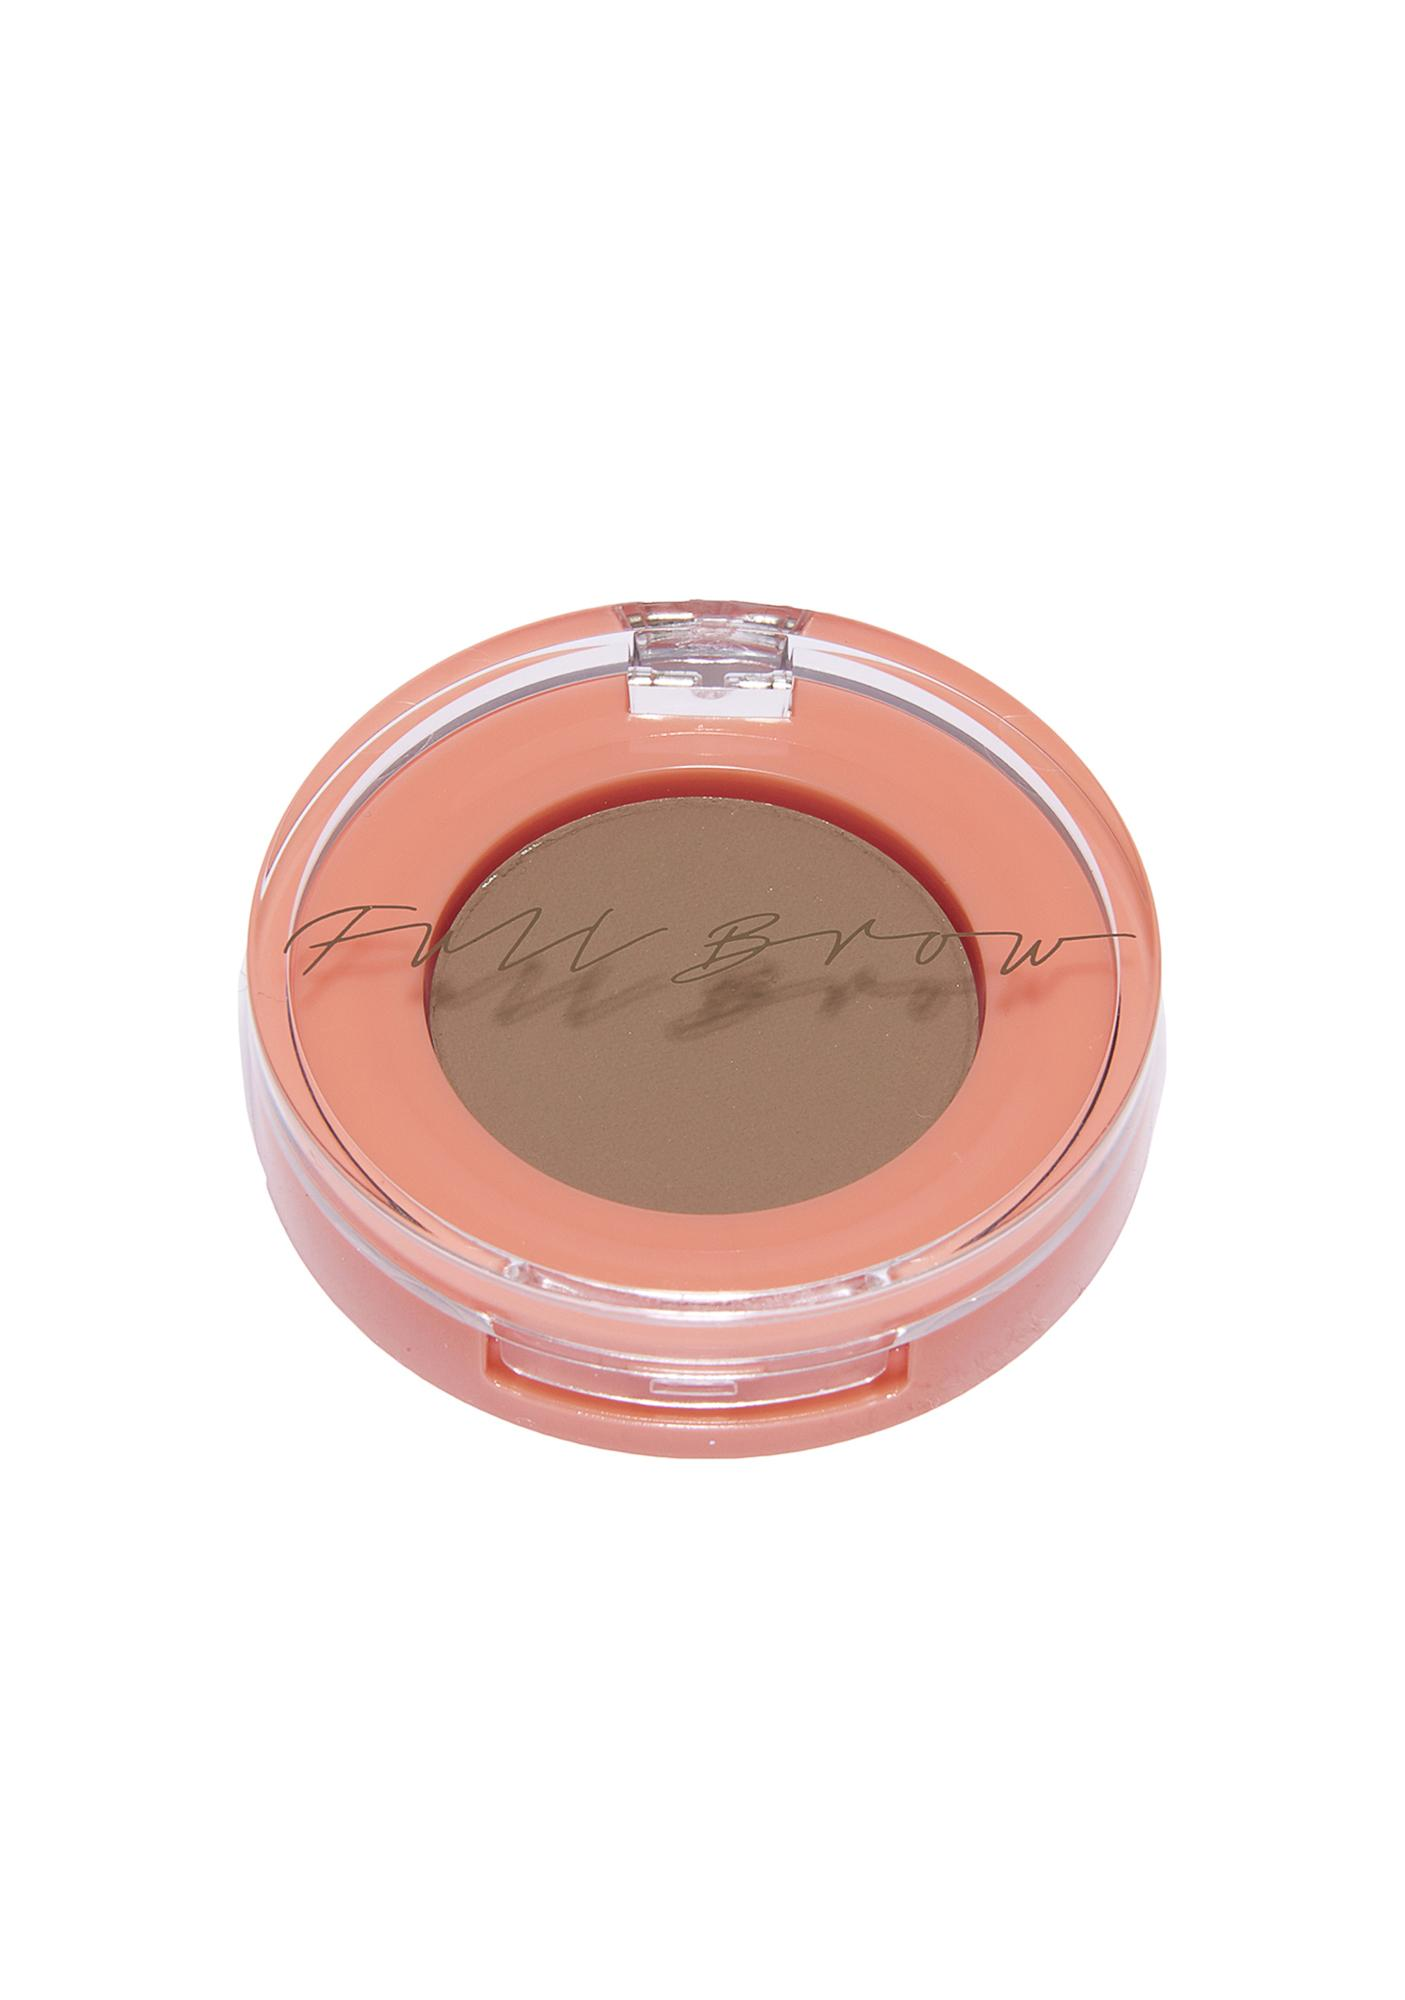 Full Brow Taupe Brow Powder